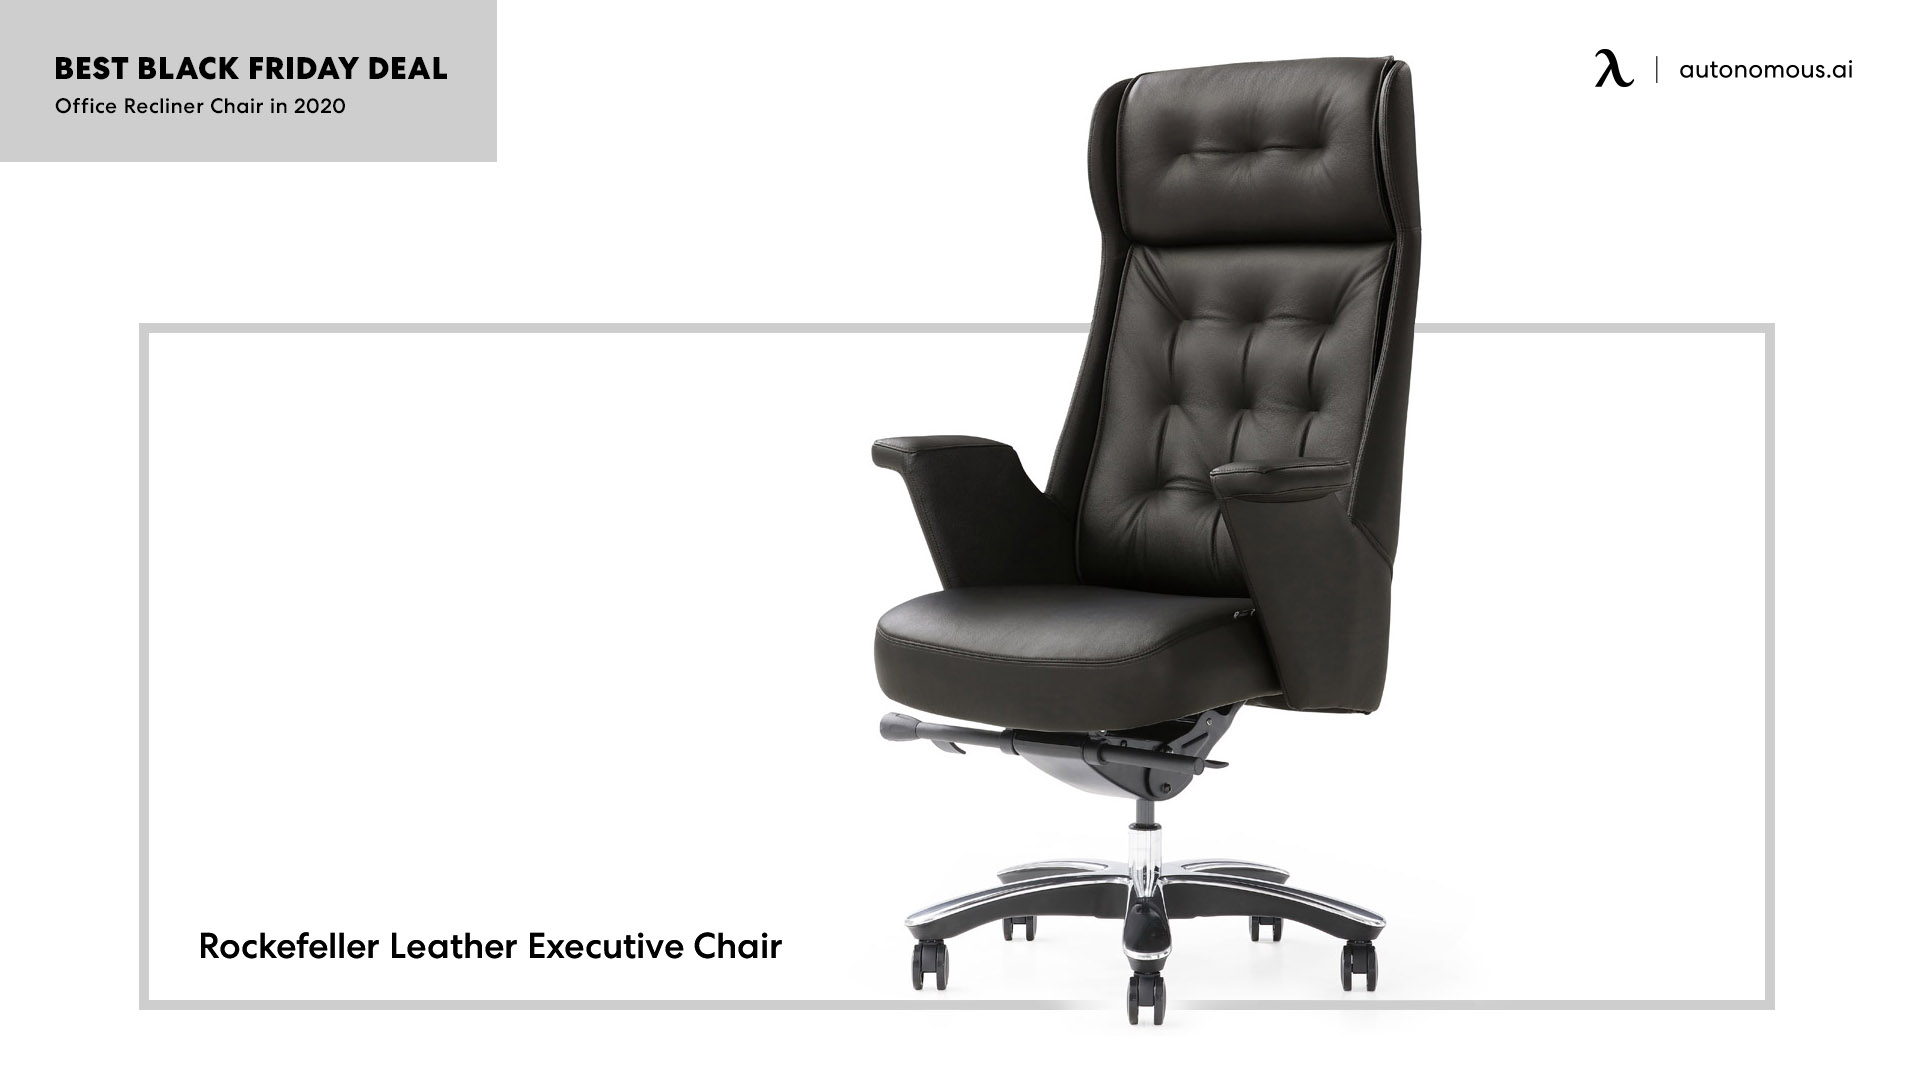 The Rockefeller executive chair from Zuri